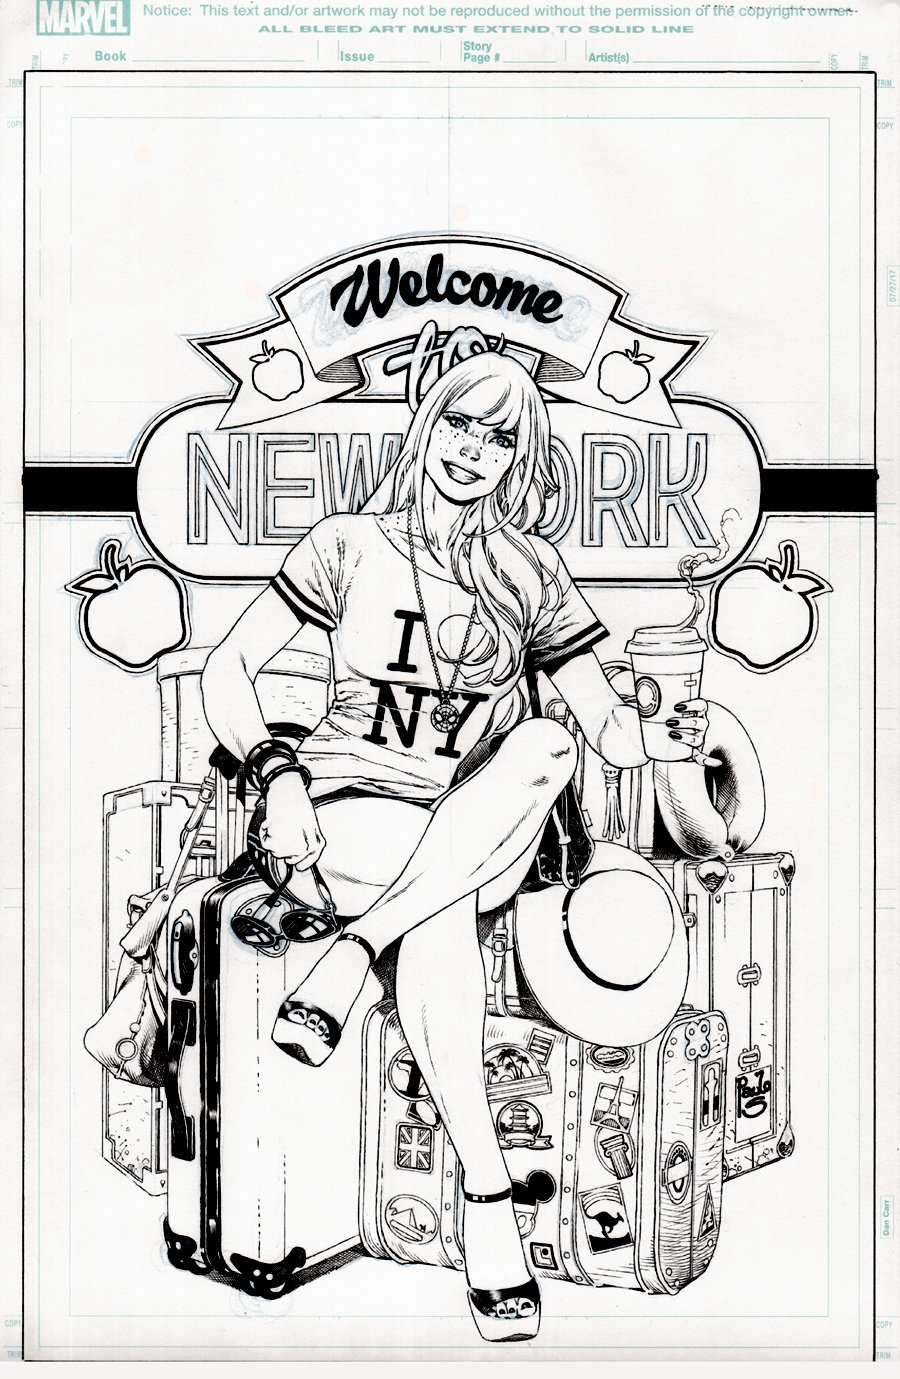 Amazing Mary Jane #6 Cover (SUPER SEXY MJ!) 2019